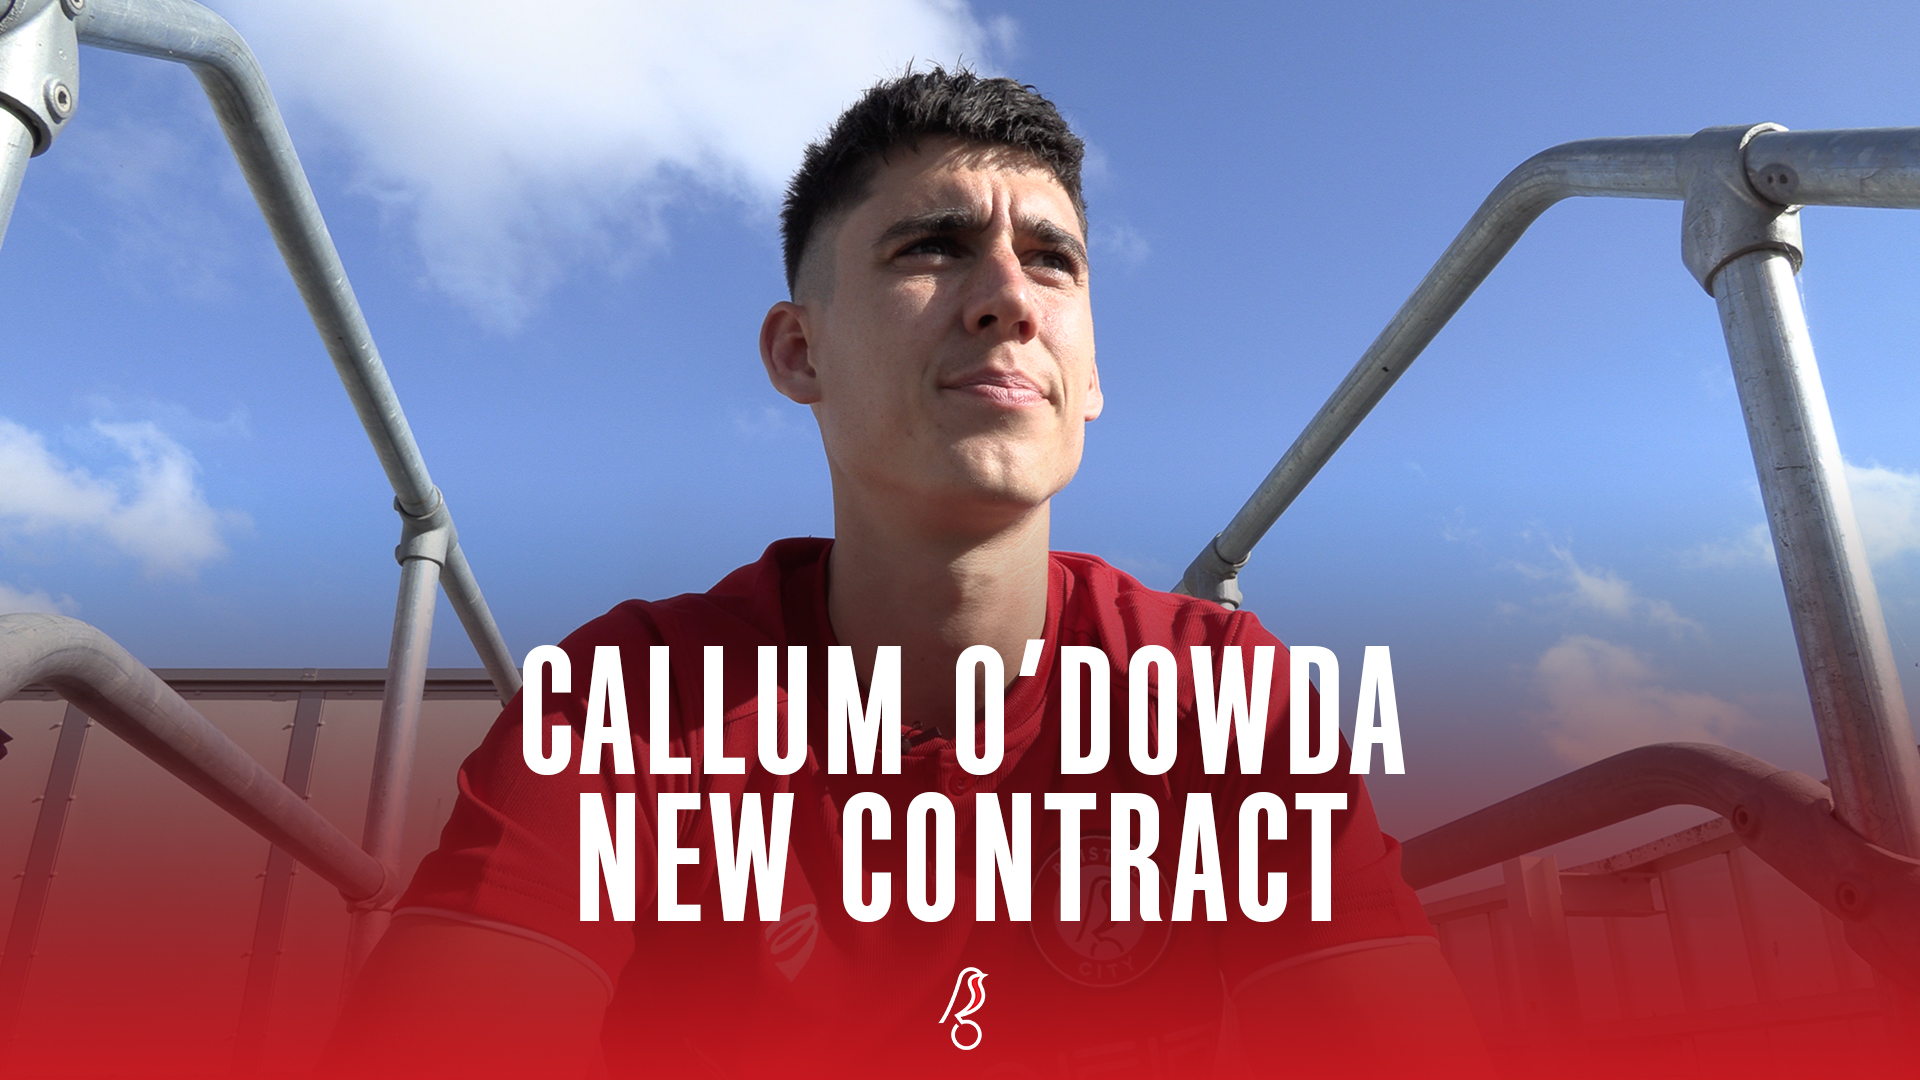 O'Dowda pens new deal thumbnail